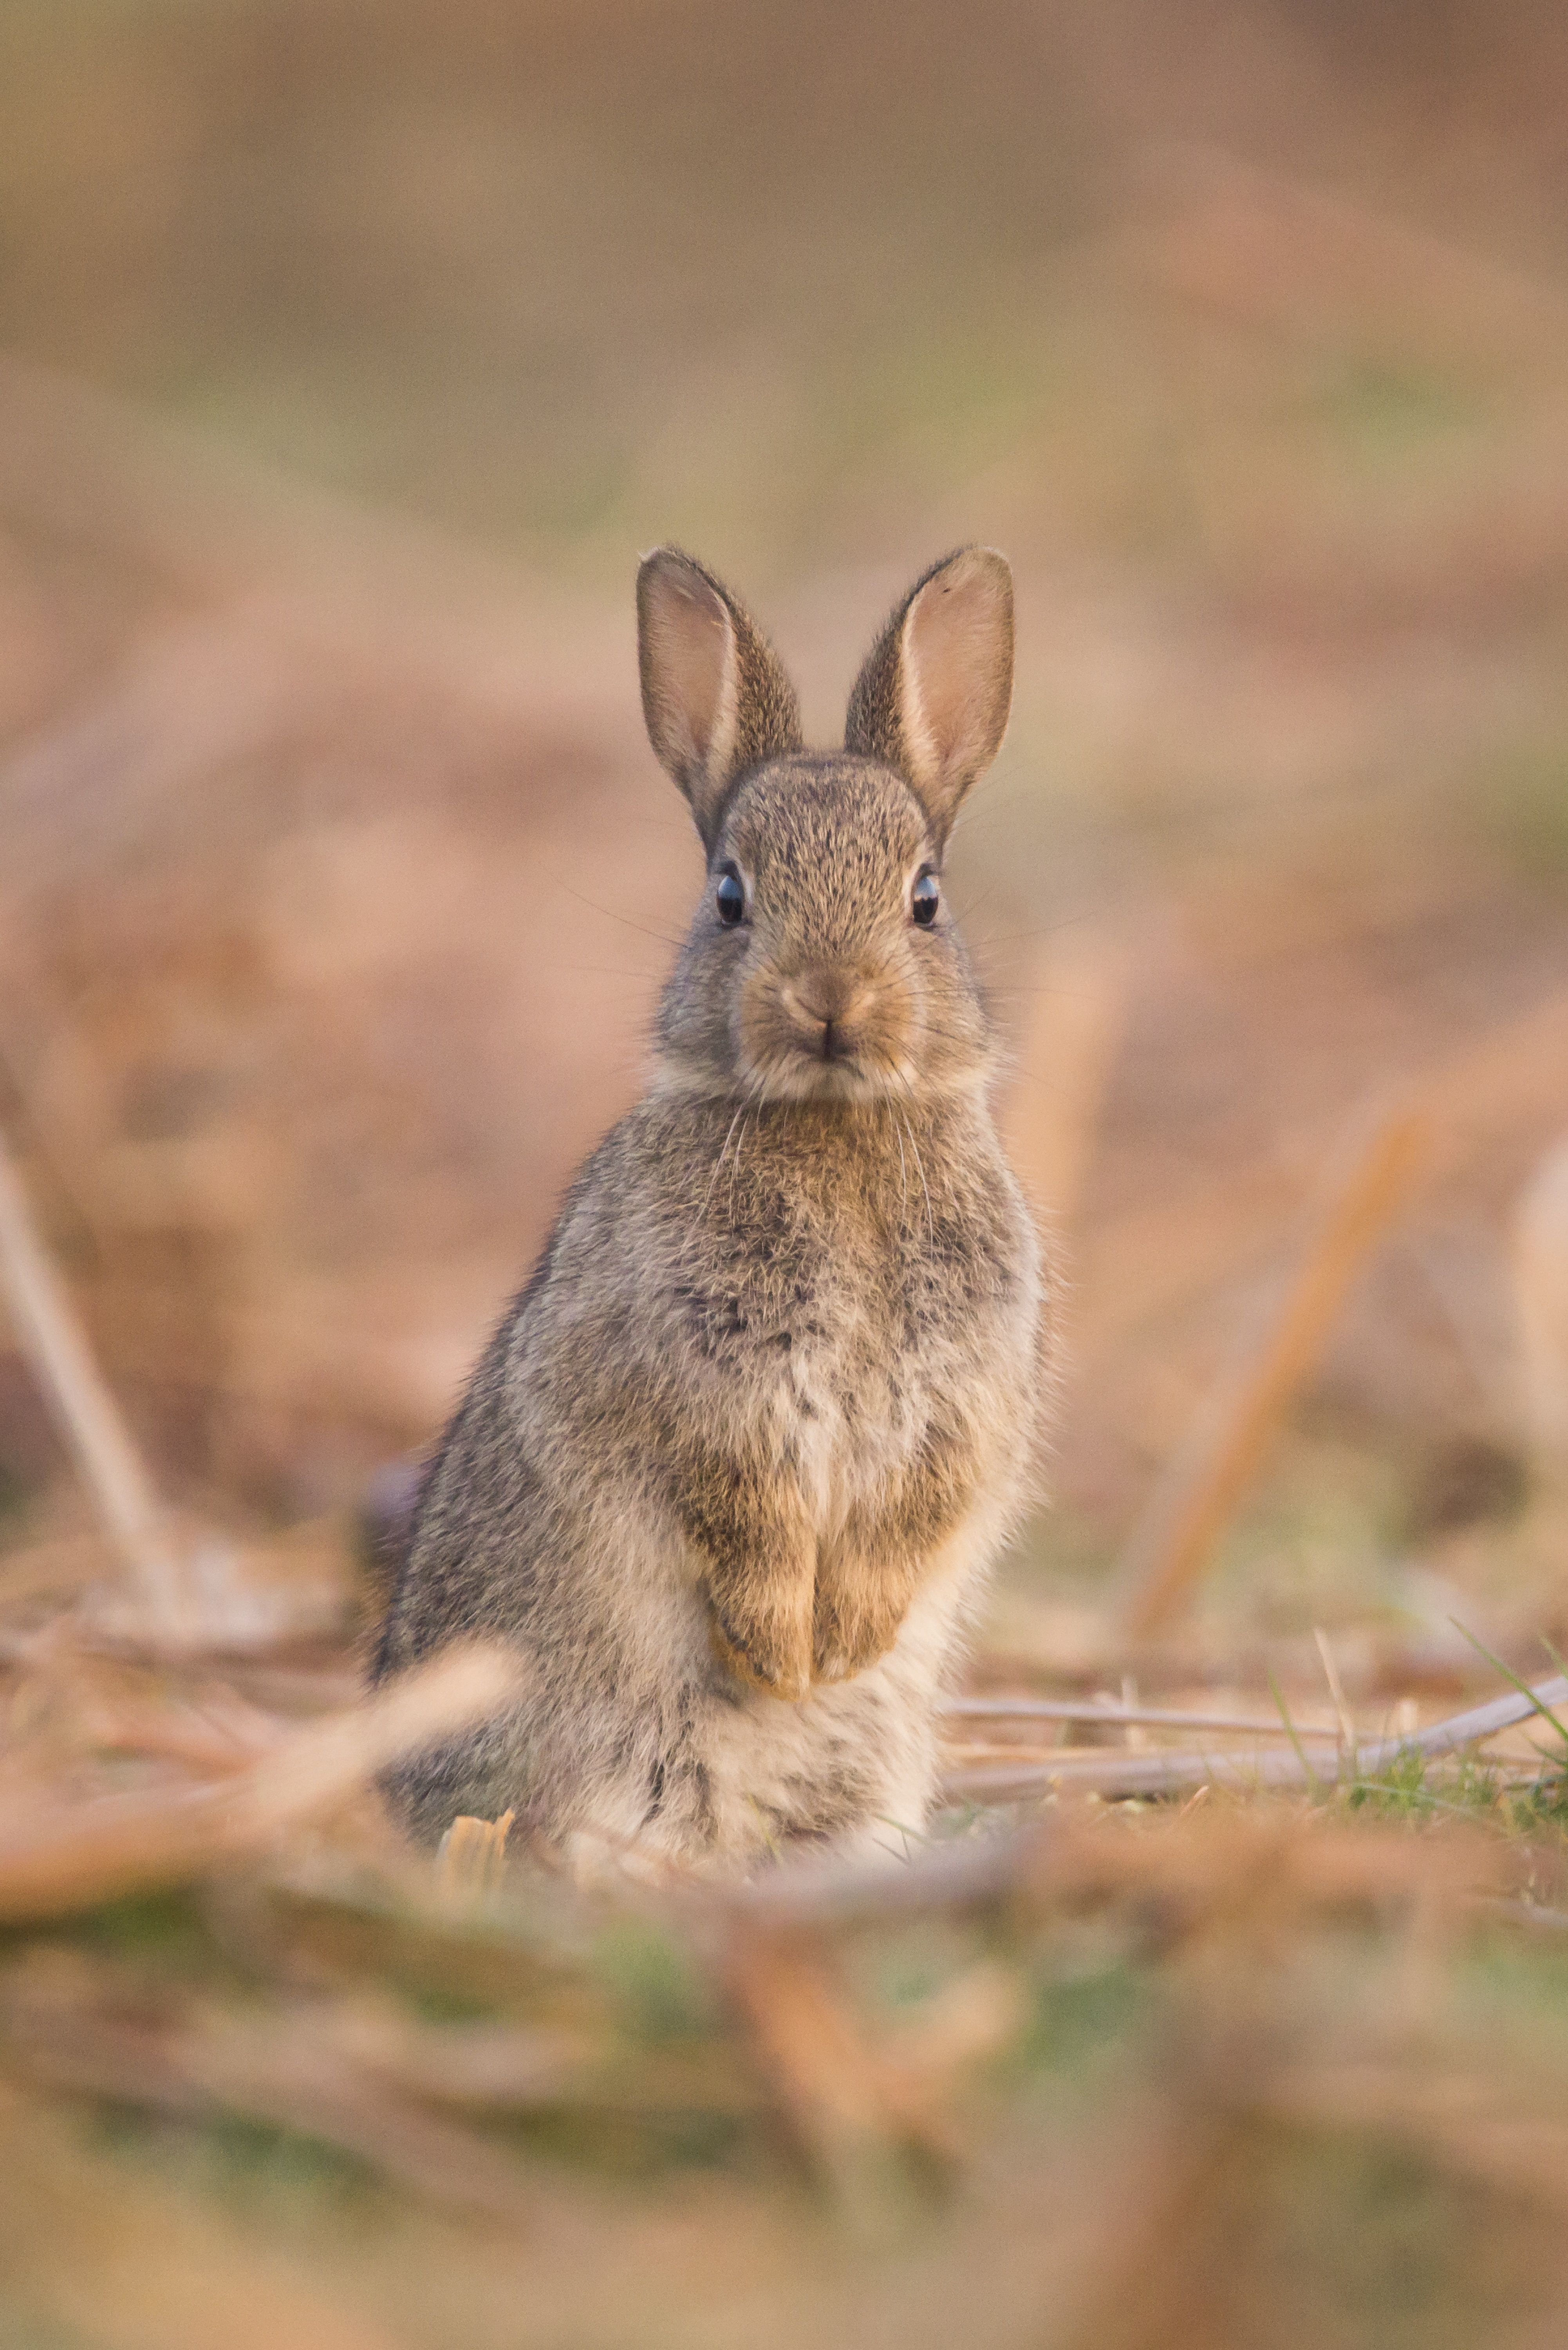 93384 download wallpaper Animals, Hare, Nice, Sweetheart, Funny, Animal, Wildlife screensavers and pictures for free